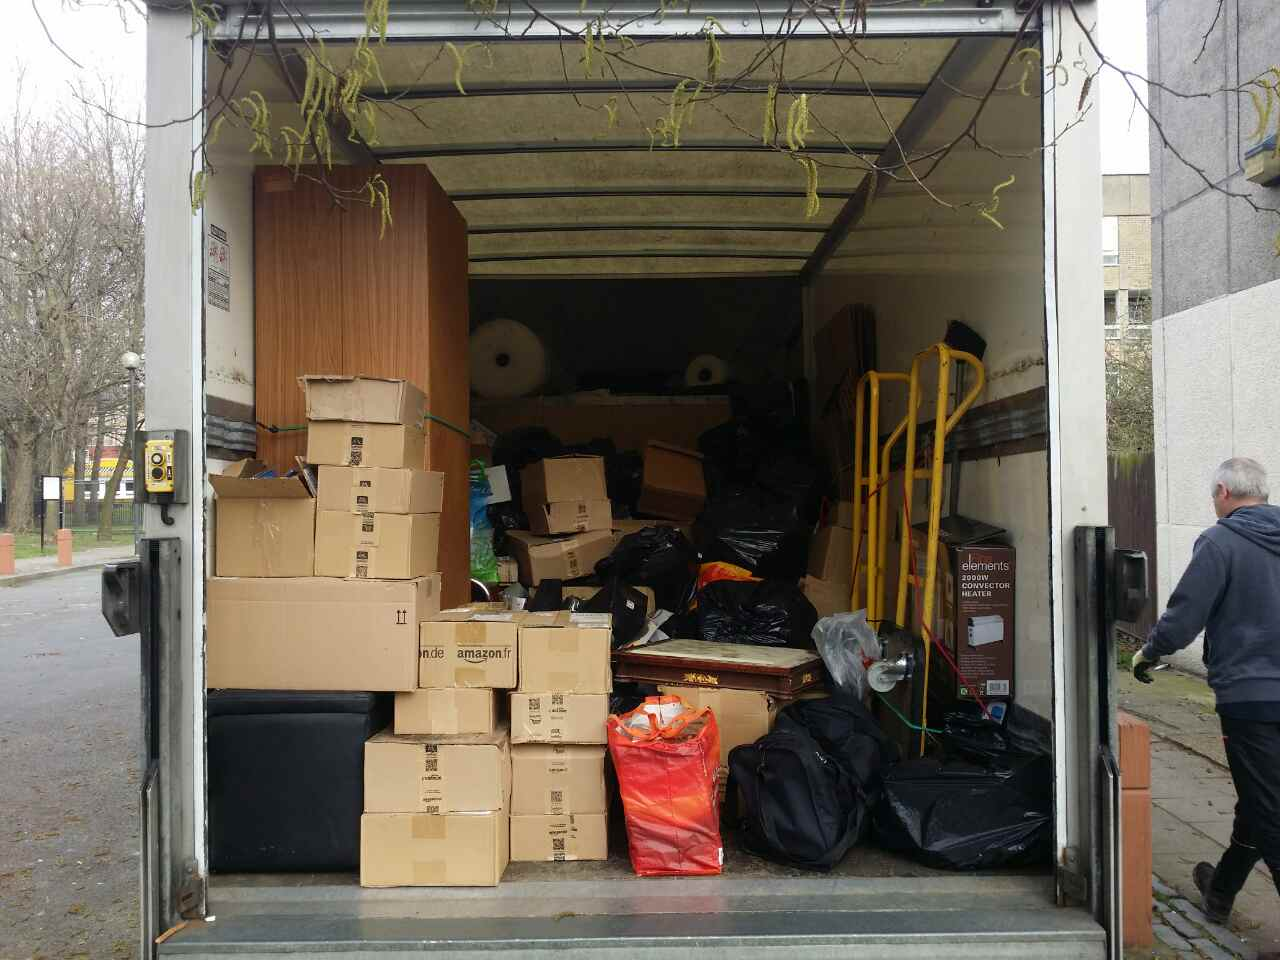 Hackney movers services